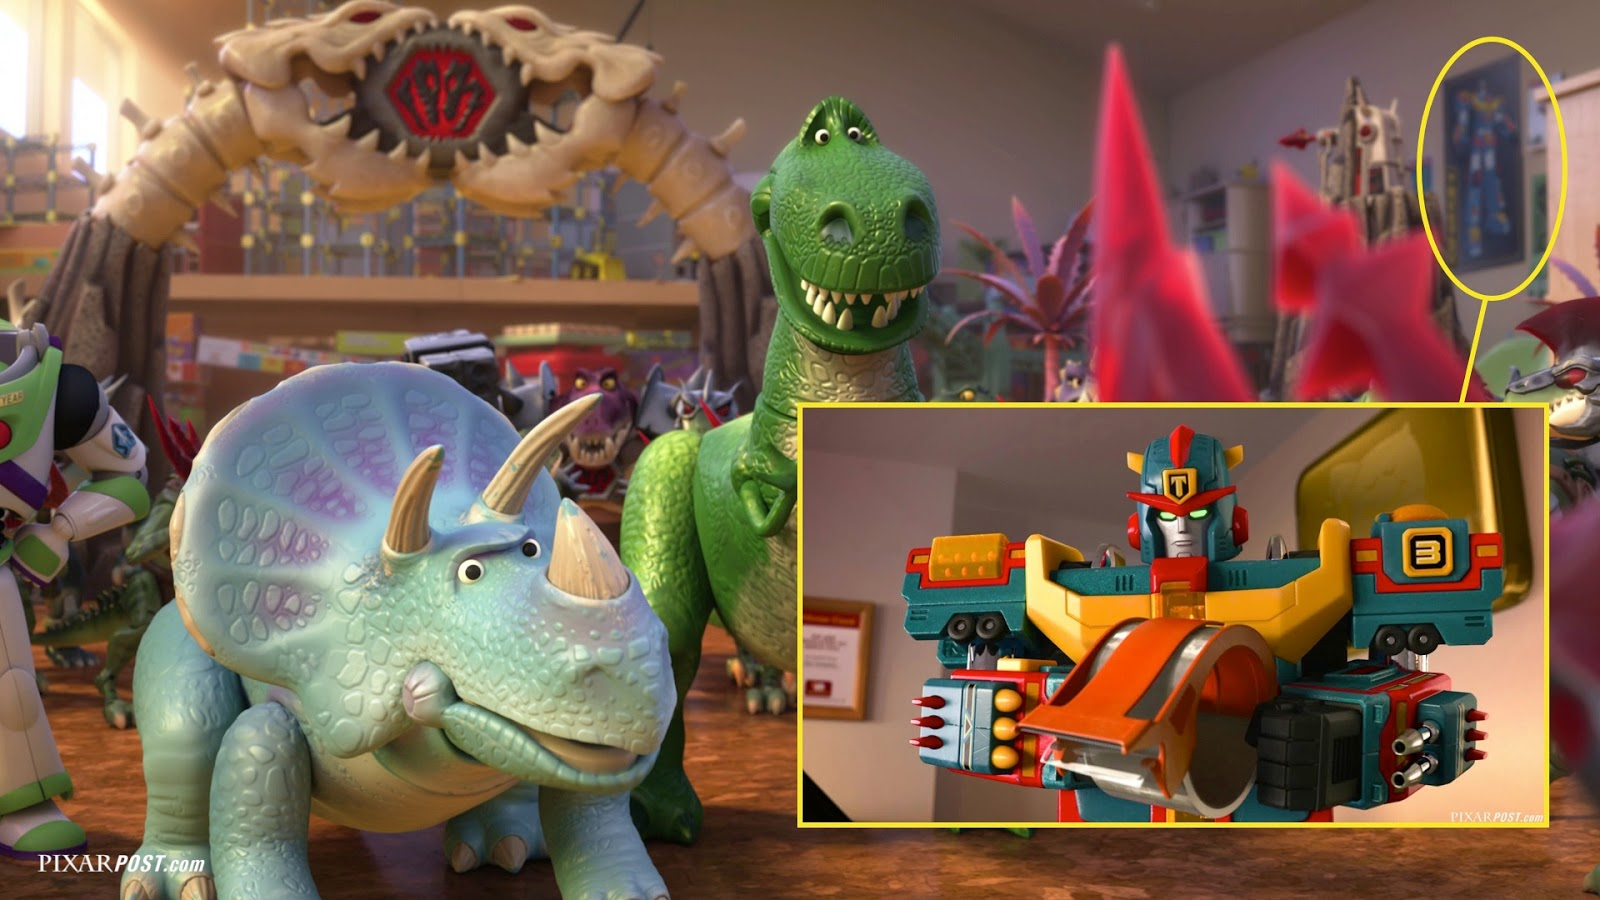 In Depth Look At The Easter Eggs Hidden In Toy Story That